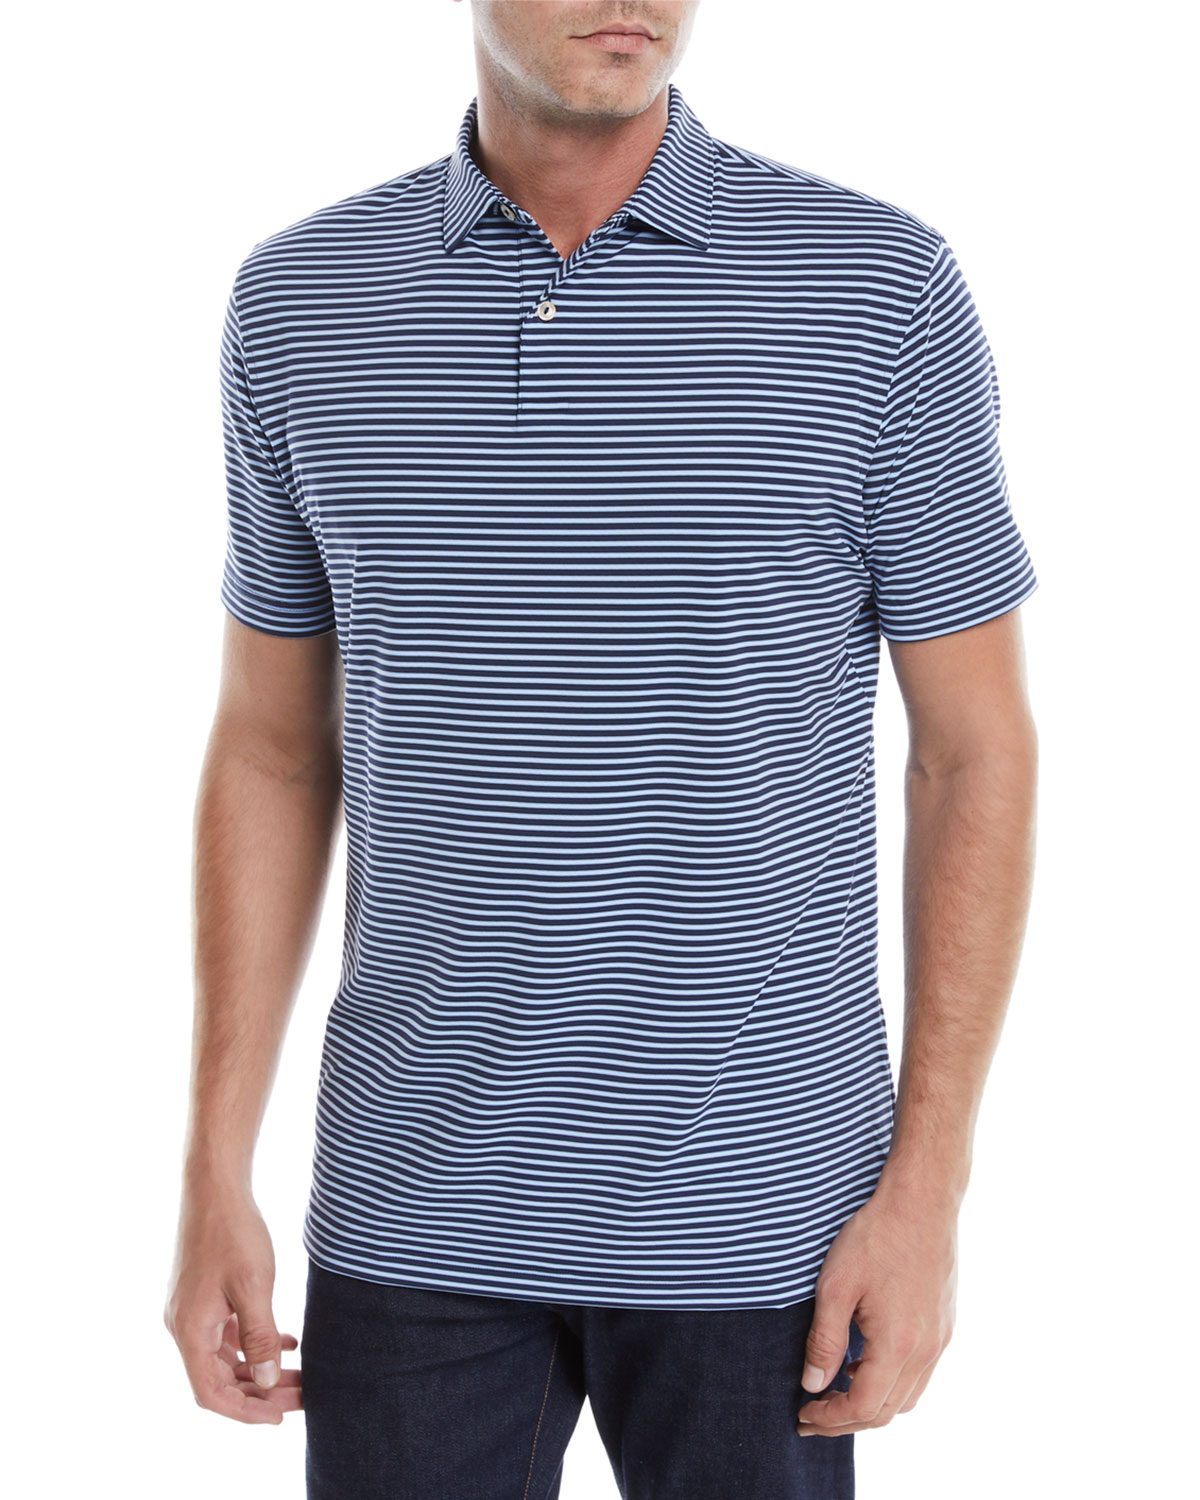 d1dde2d6 Peter Millar Men's Tour-Fit Joyce Stripe Performance Polo Shirt ...